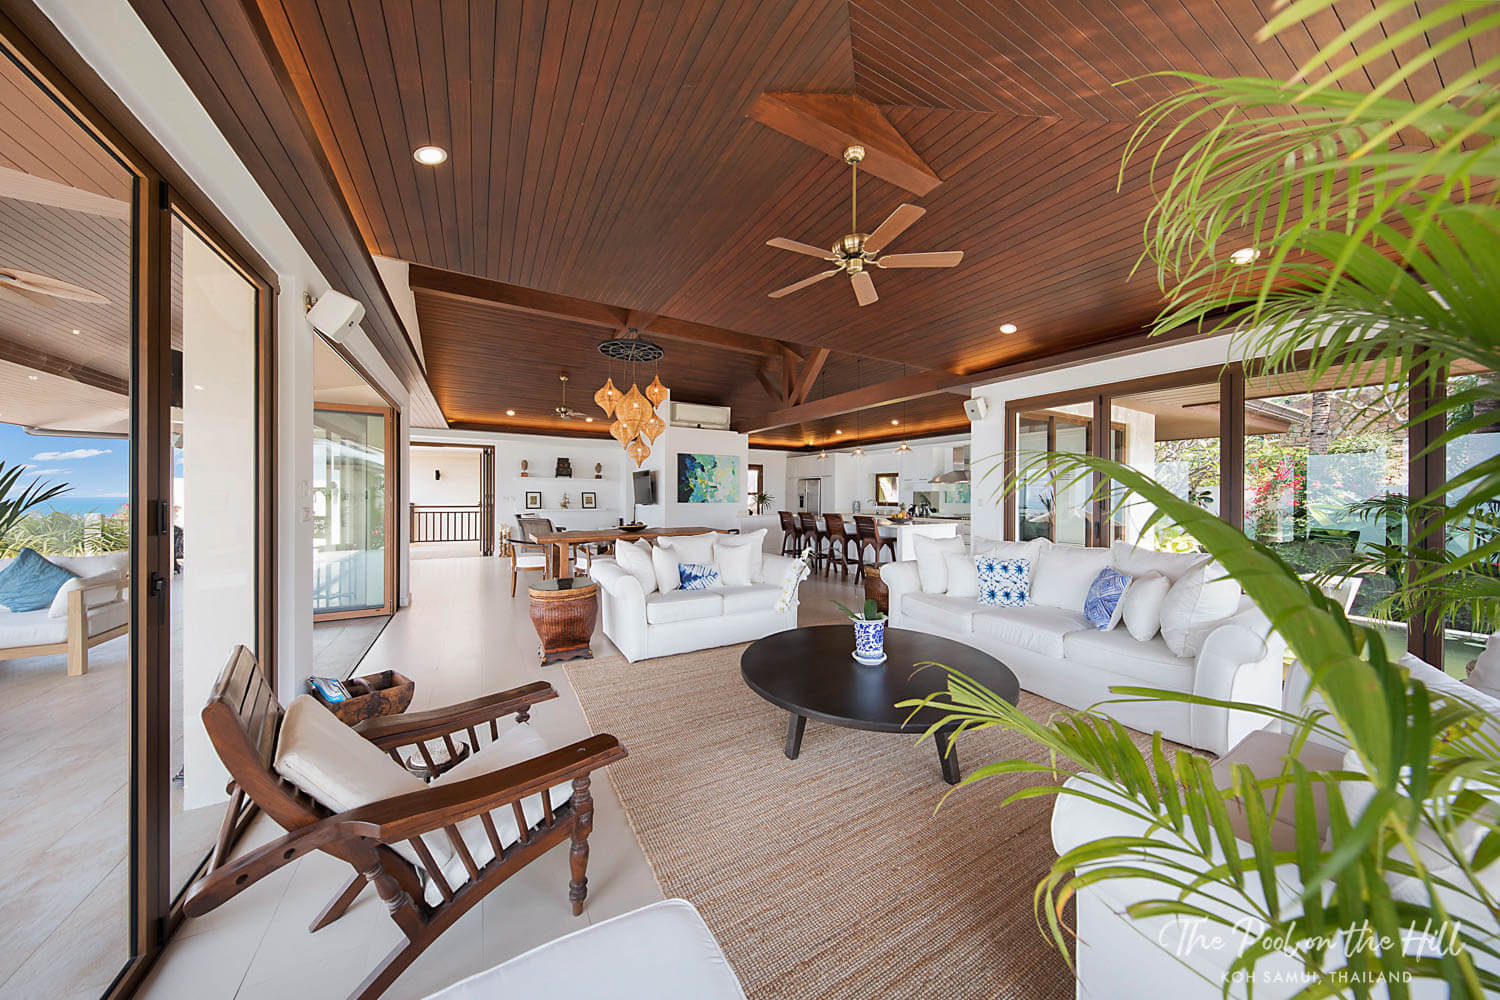 Thai villa: Enjoy indoor and outdoor living in the open-plan living room, dining and kitchen at The Pool on the Hill